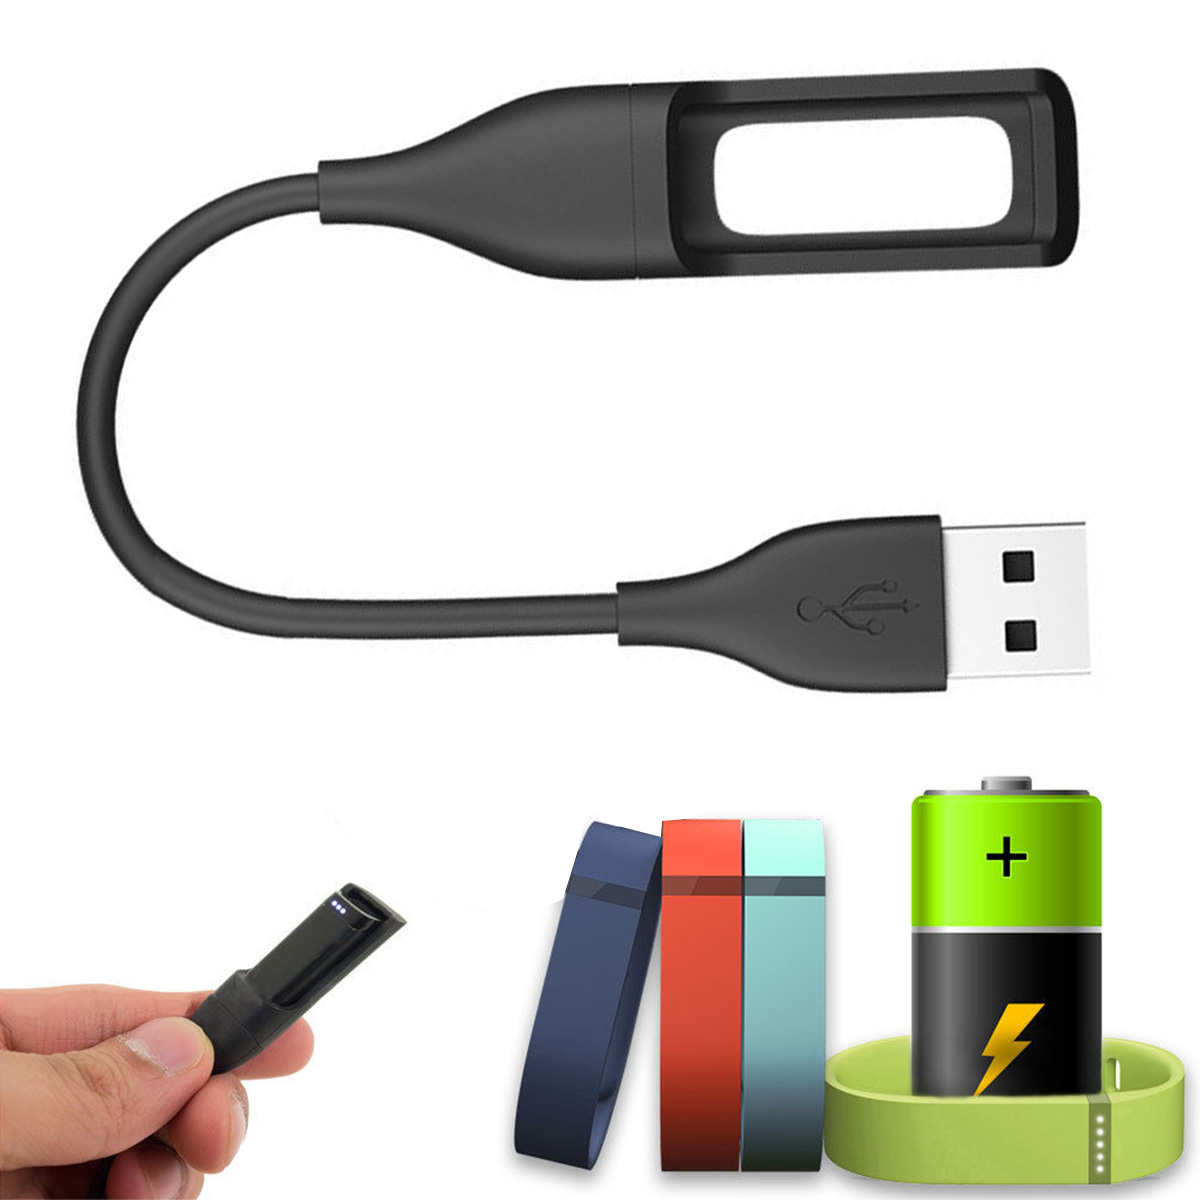 Replacement USB Charging Cable Cord Charger for Fitbit Flex Band Bracelet Wristband